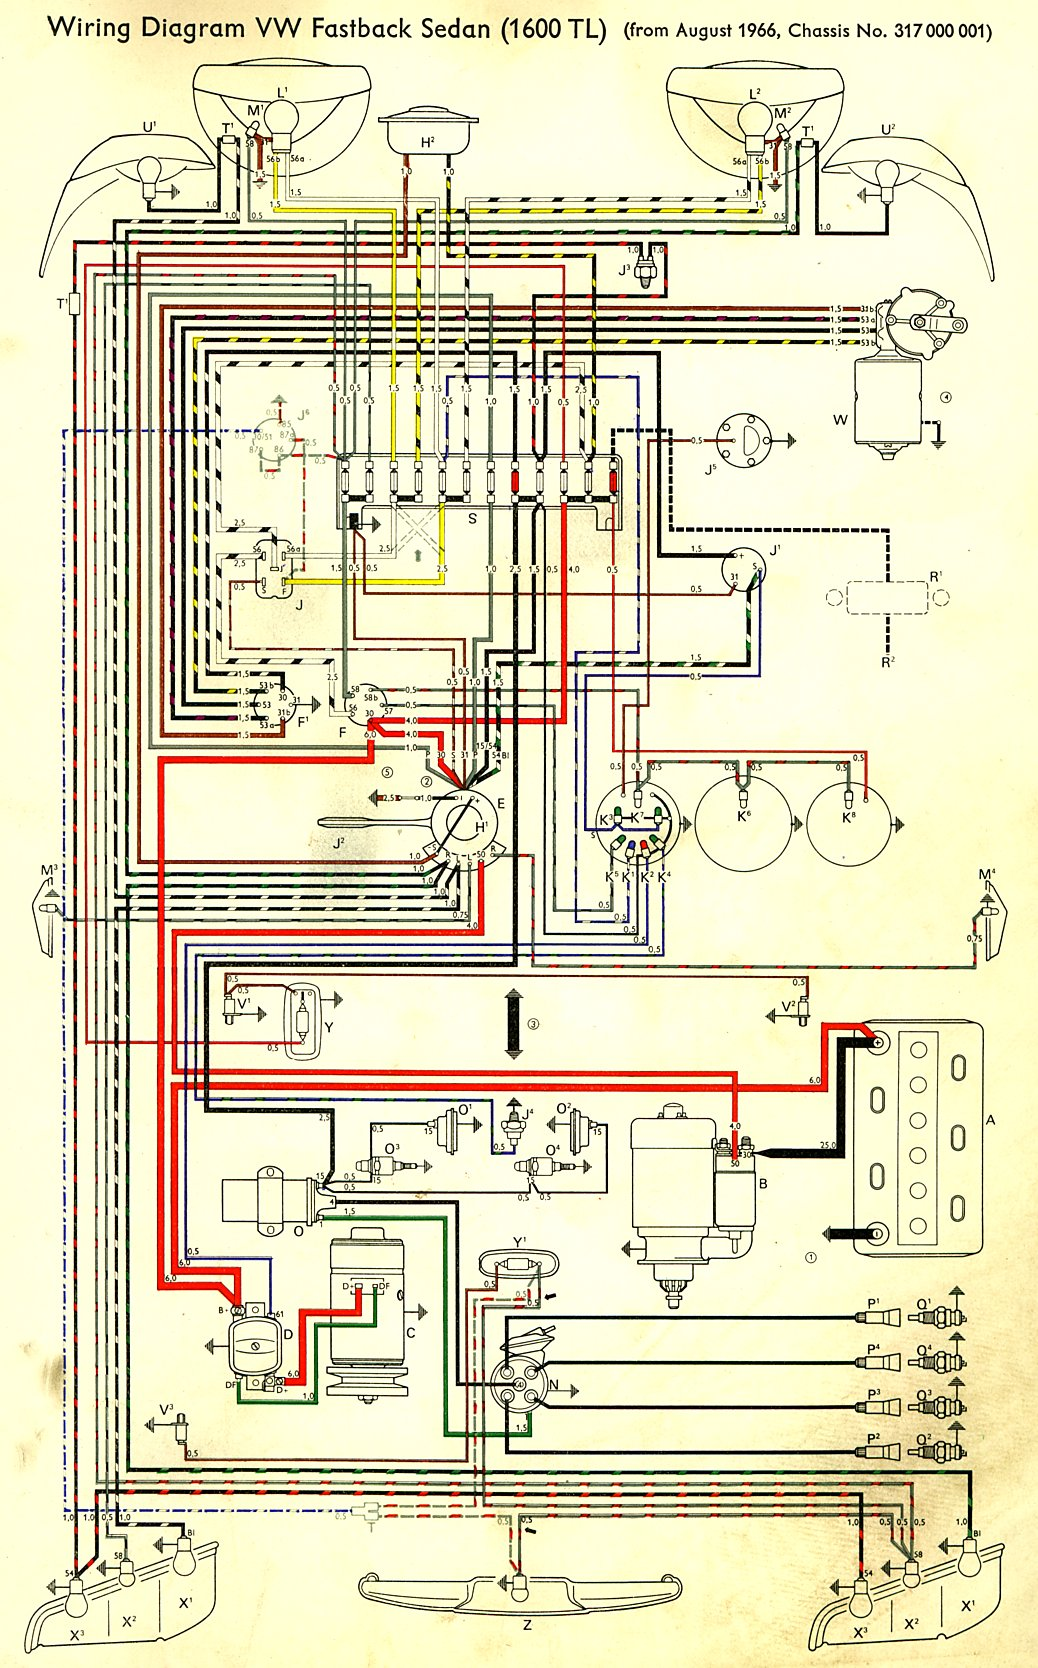 type3_1600TL_67 vw bus wiring diagram 1965 vw bus wiring diagram \u2022 wiring diagrams 1971 vw beetle wiring diagram at honlapkeszites.co